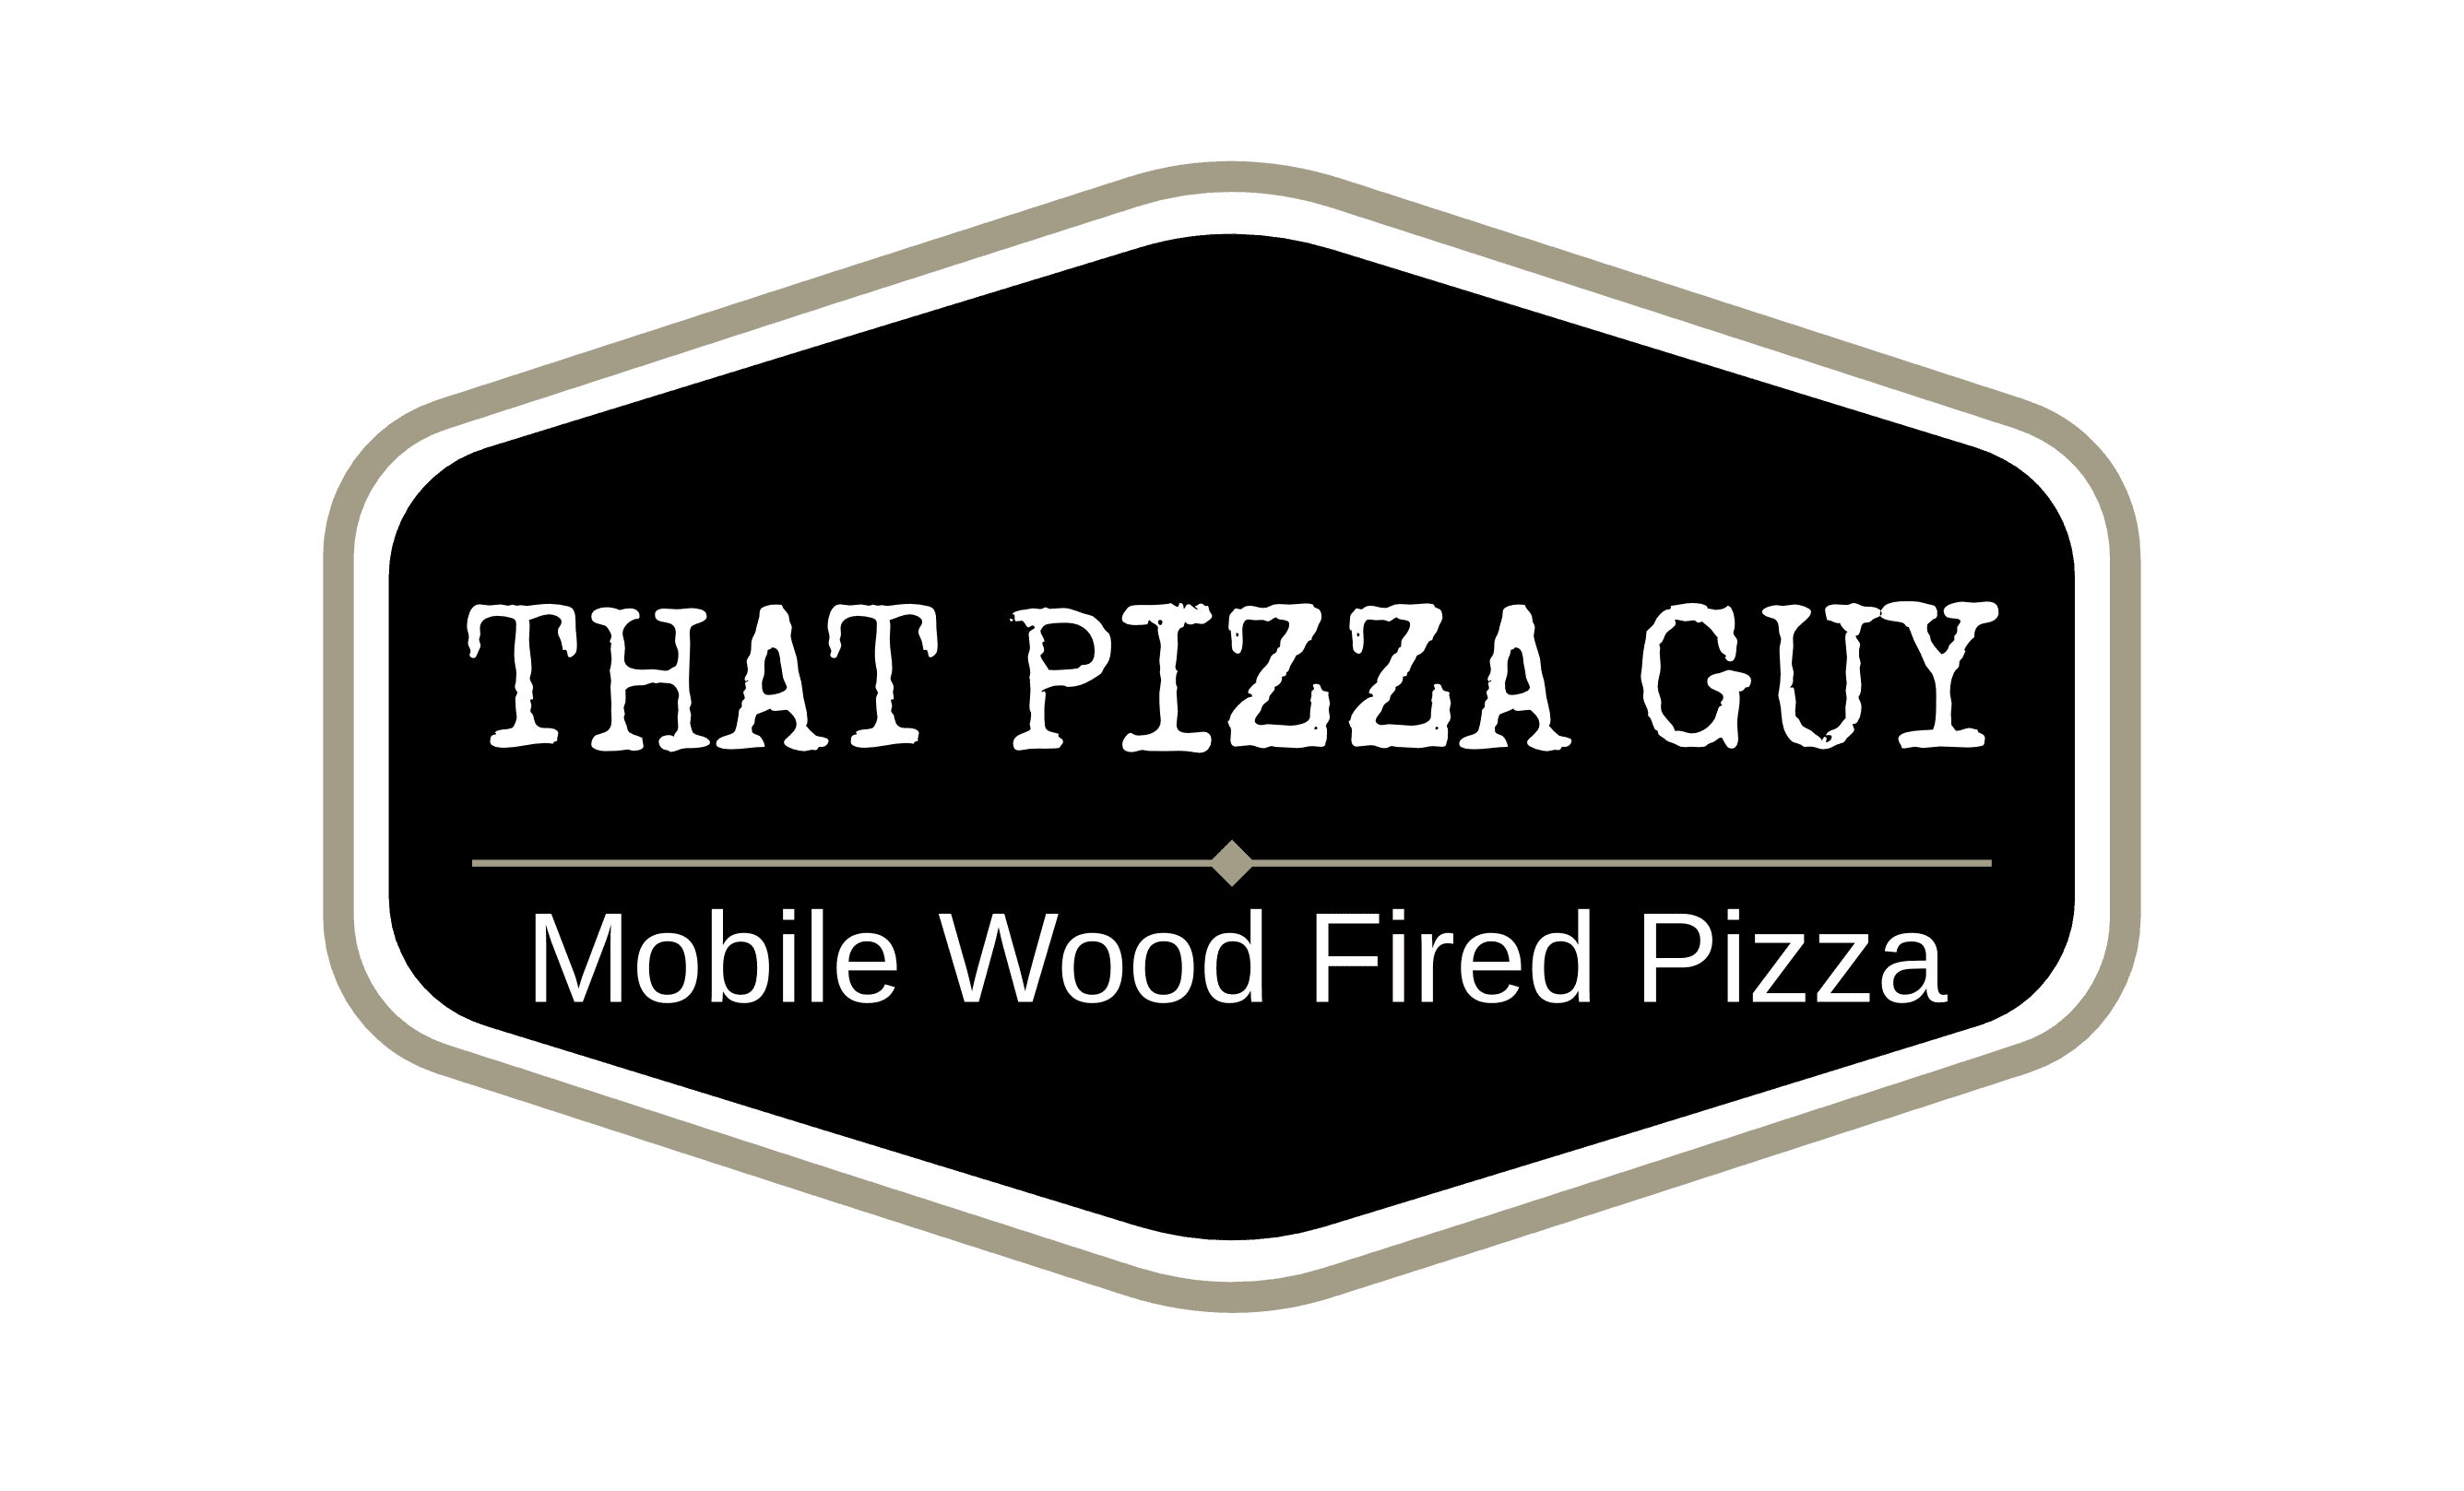 The pizza guy logo